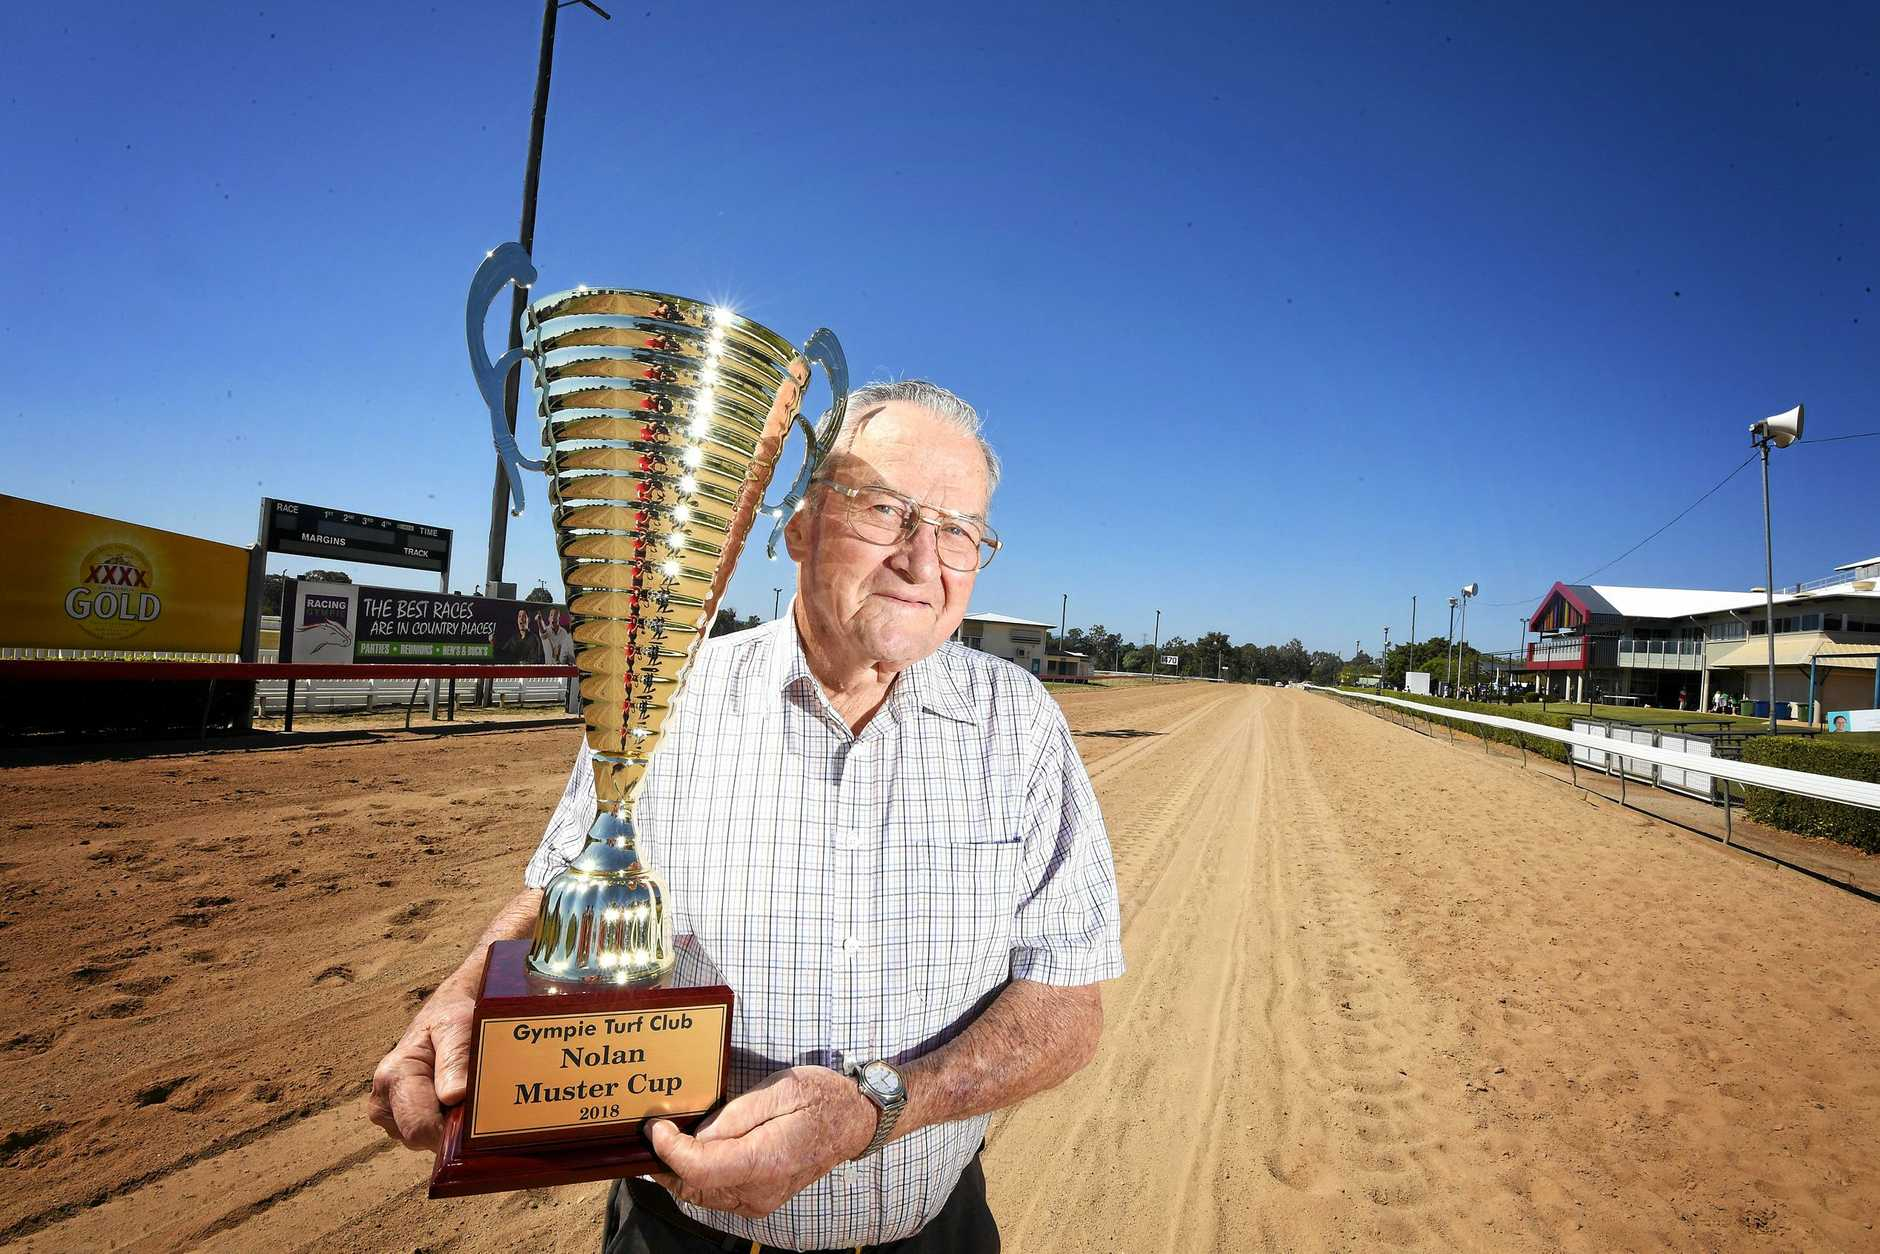 Pat Nolan getting ready for Gympie Muster Cup.